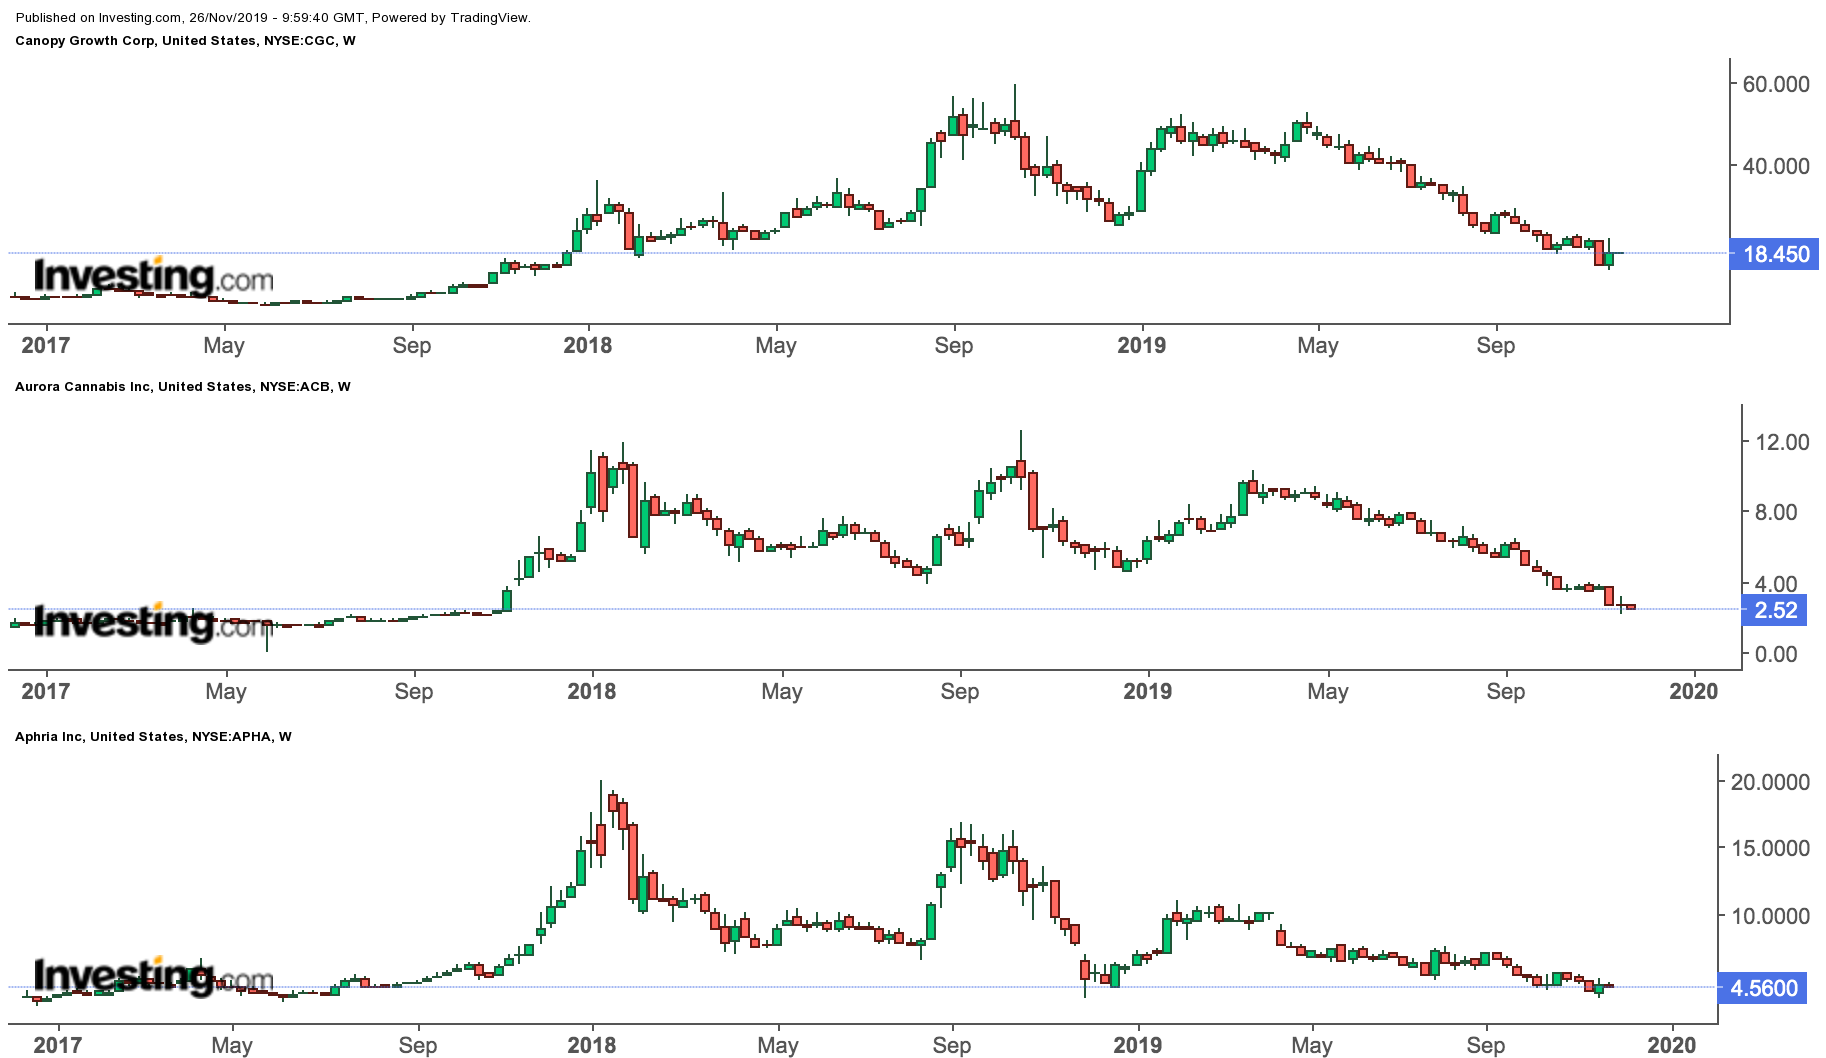 Canopy, Aurora, Aphria Weekly Price Charts